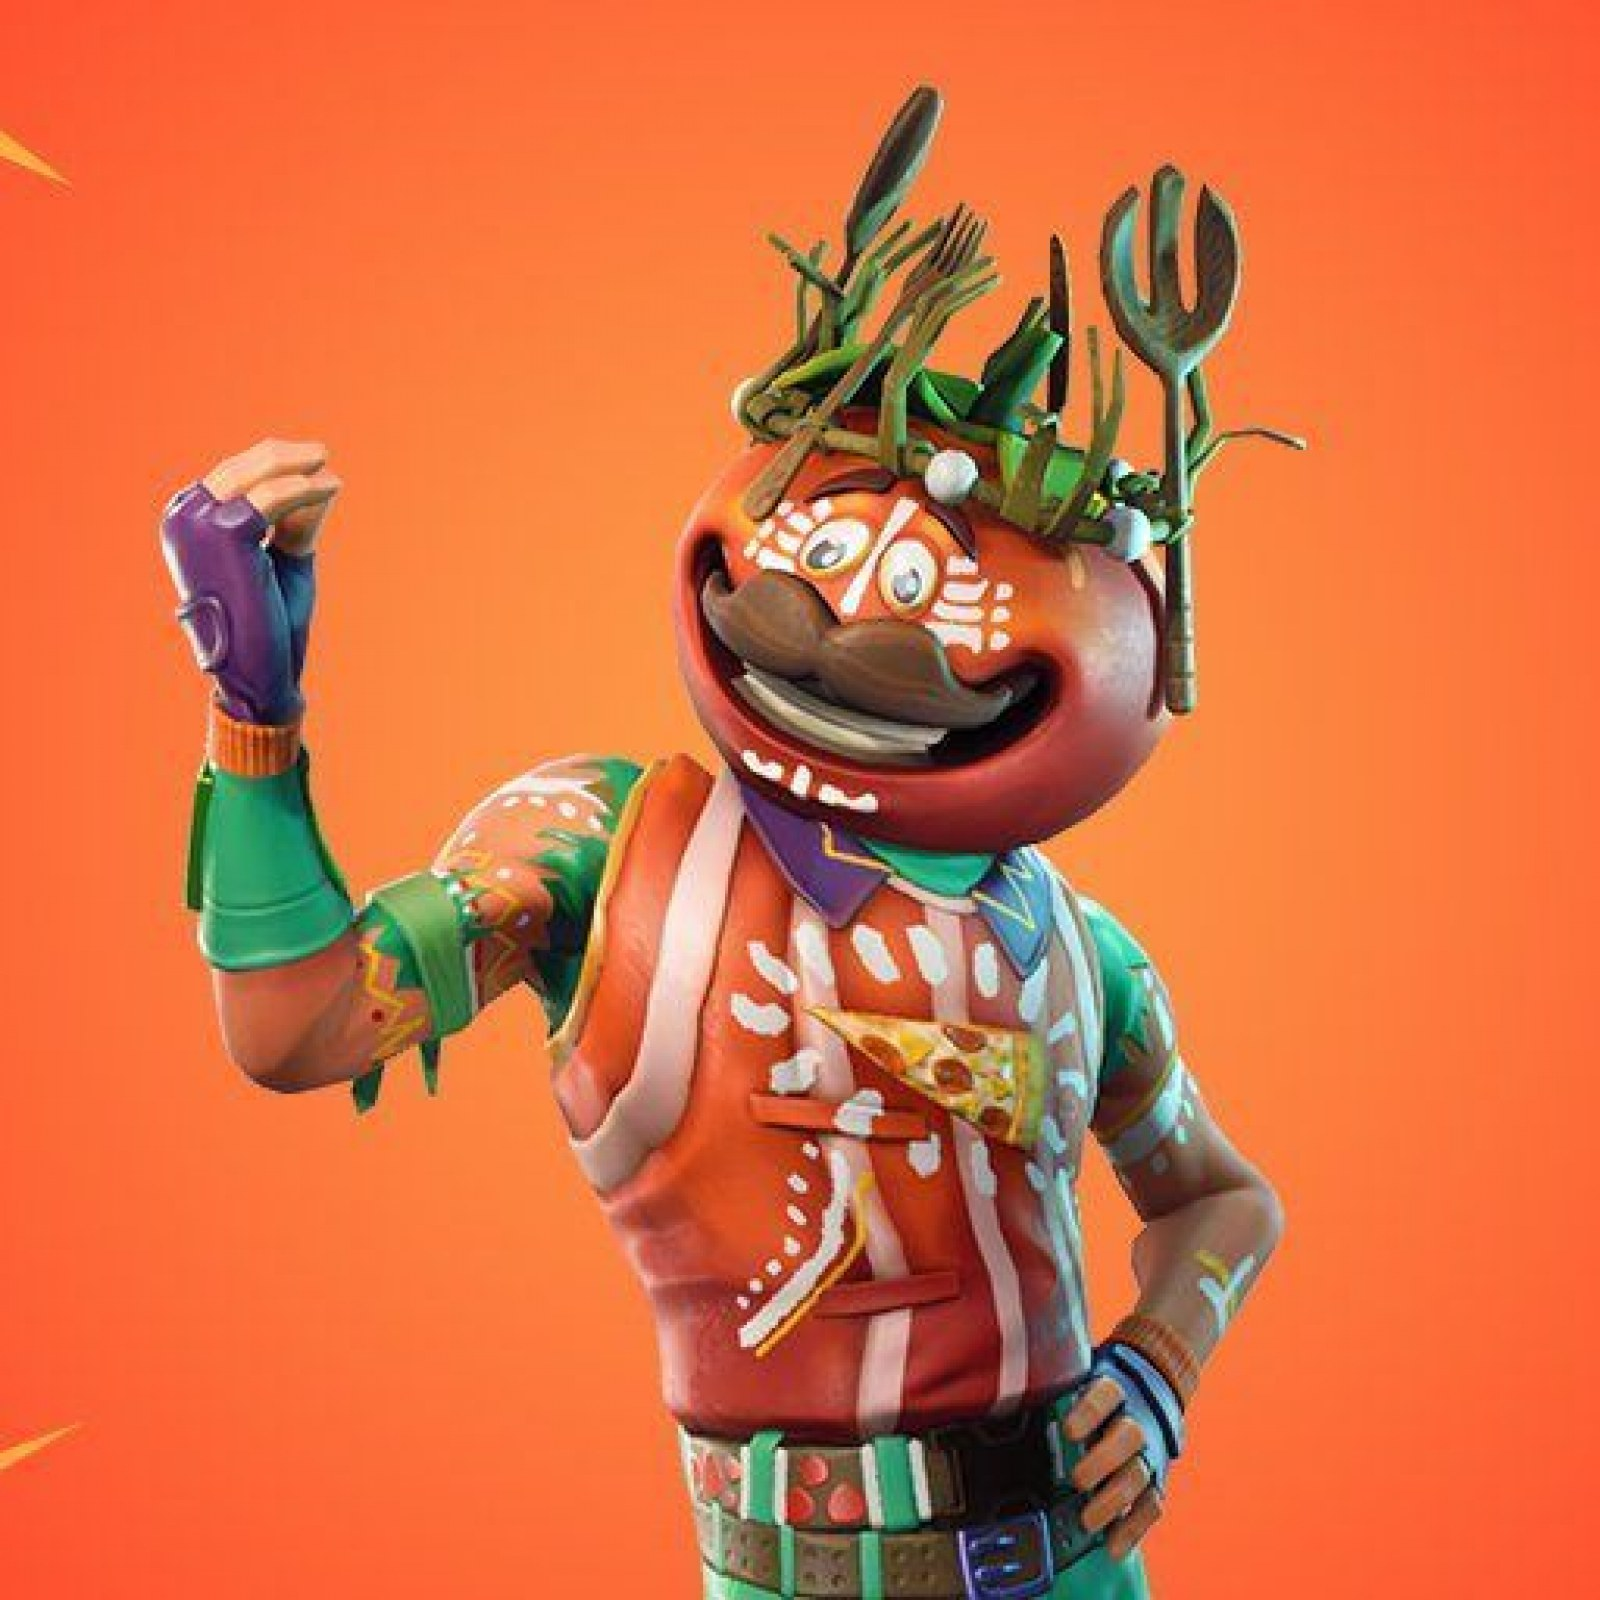 Unlocking The New Blockbuster Character In Fortnite The Visitor